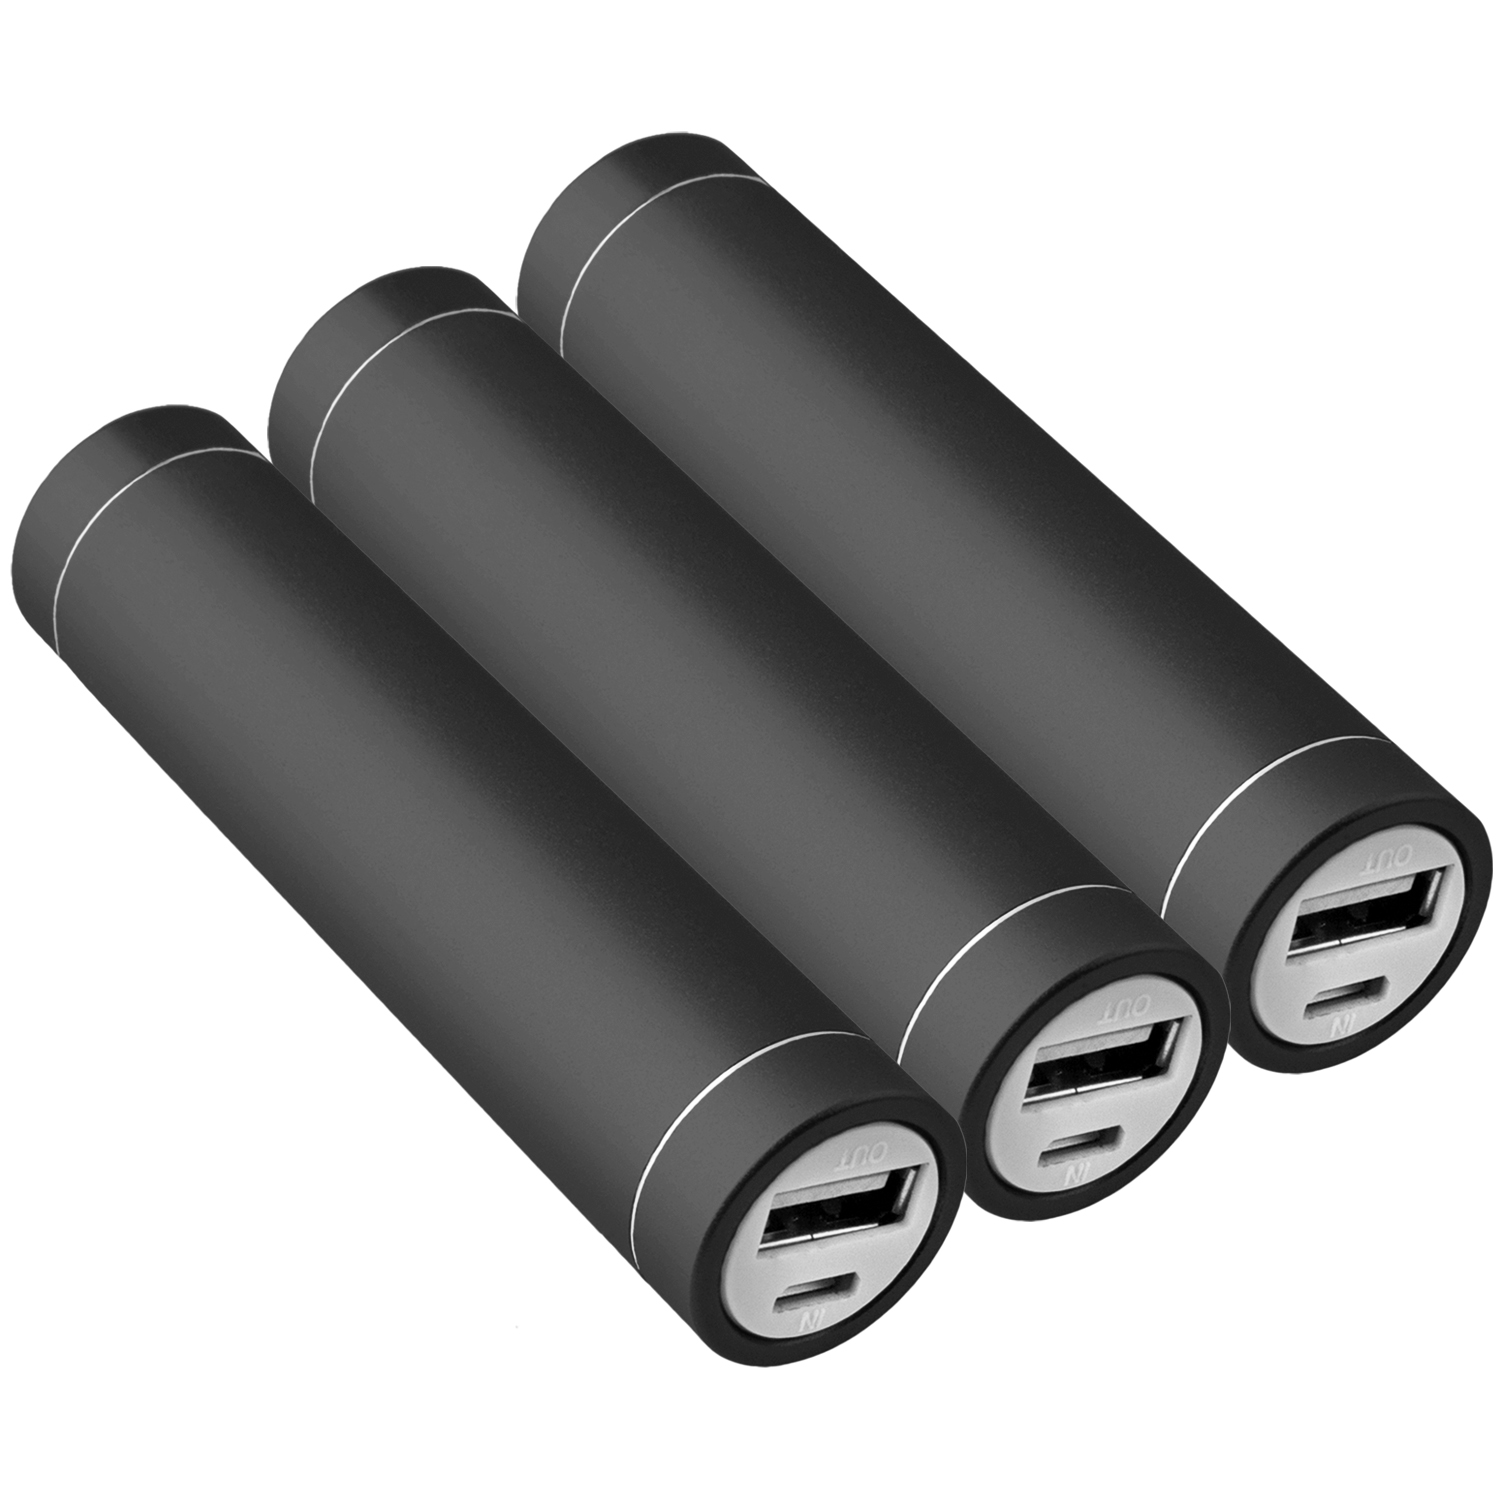 3x-Power-Bank-Akku-2600-mAh-Ladegeraet-extern-USB-iPhone-5s-schwarz-NT003